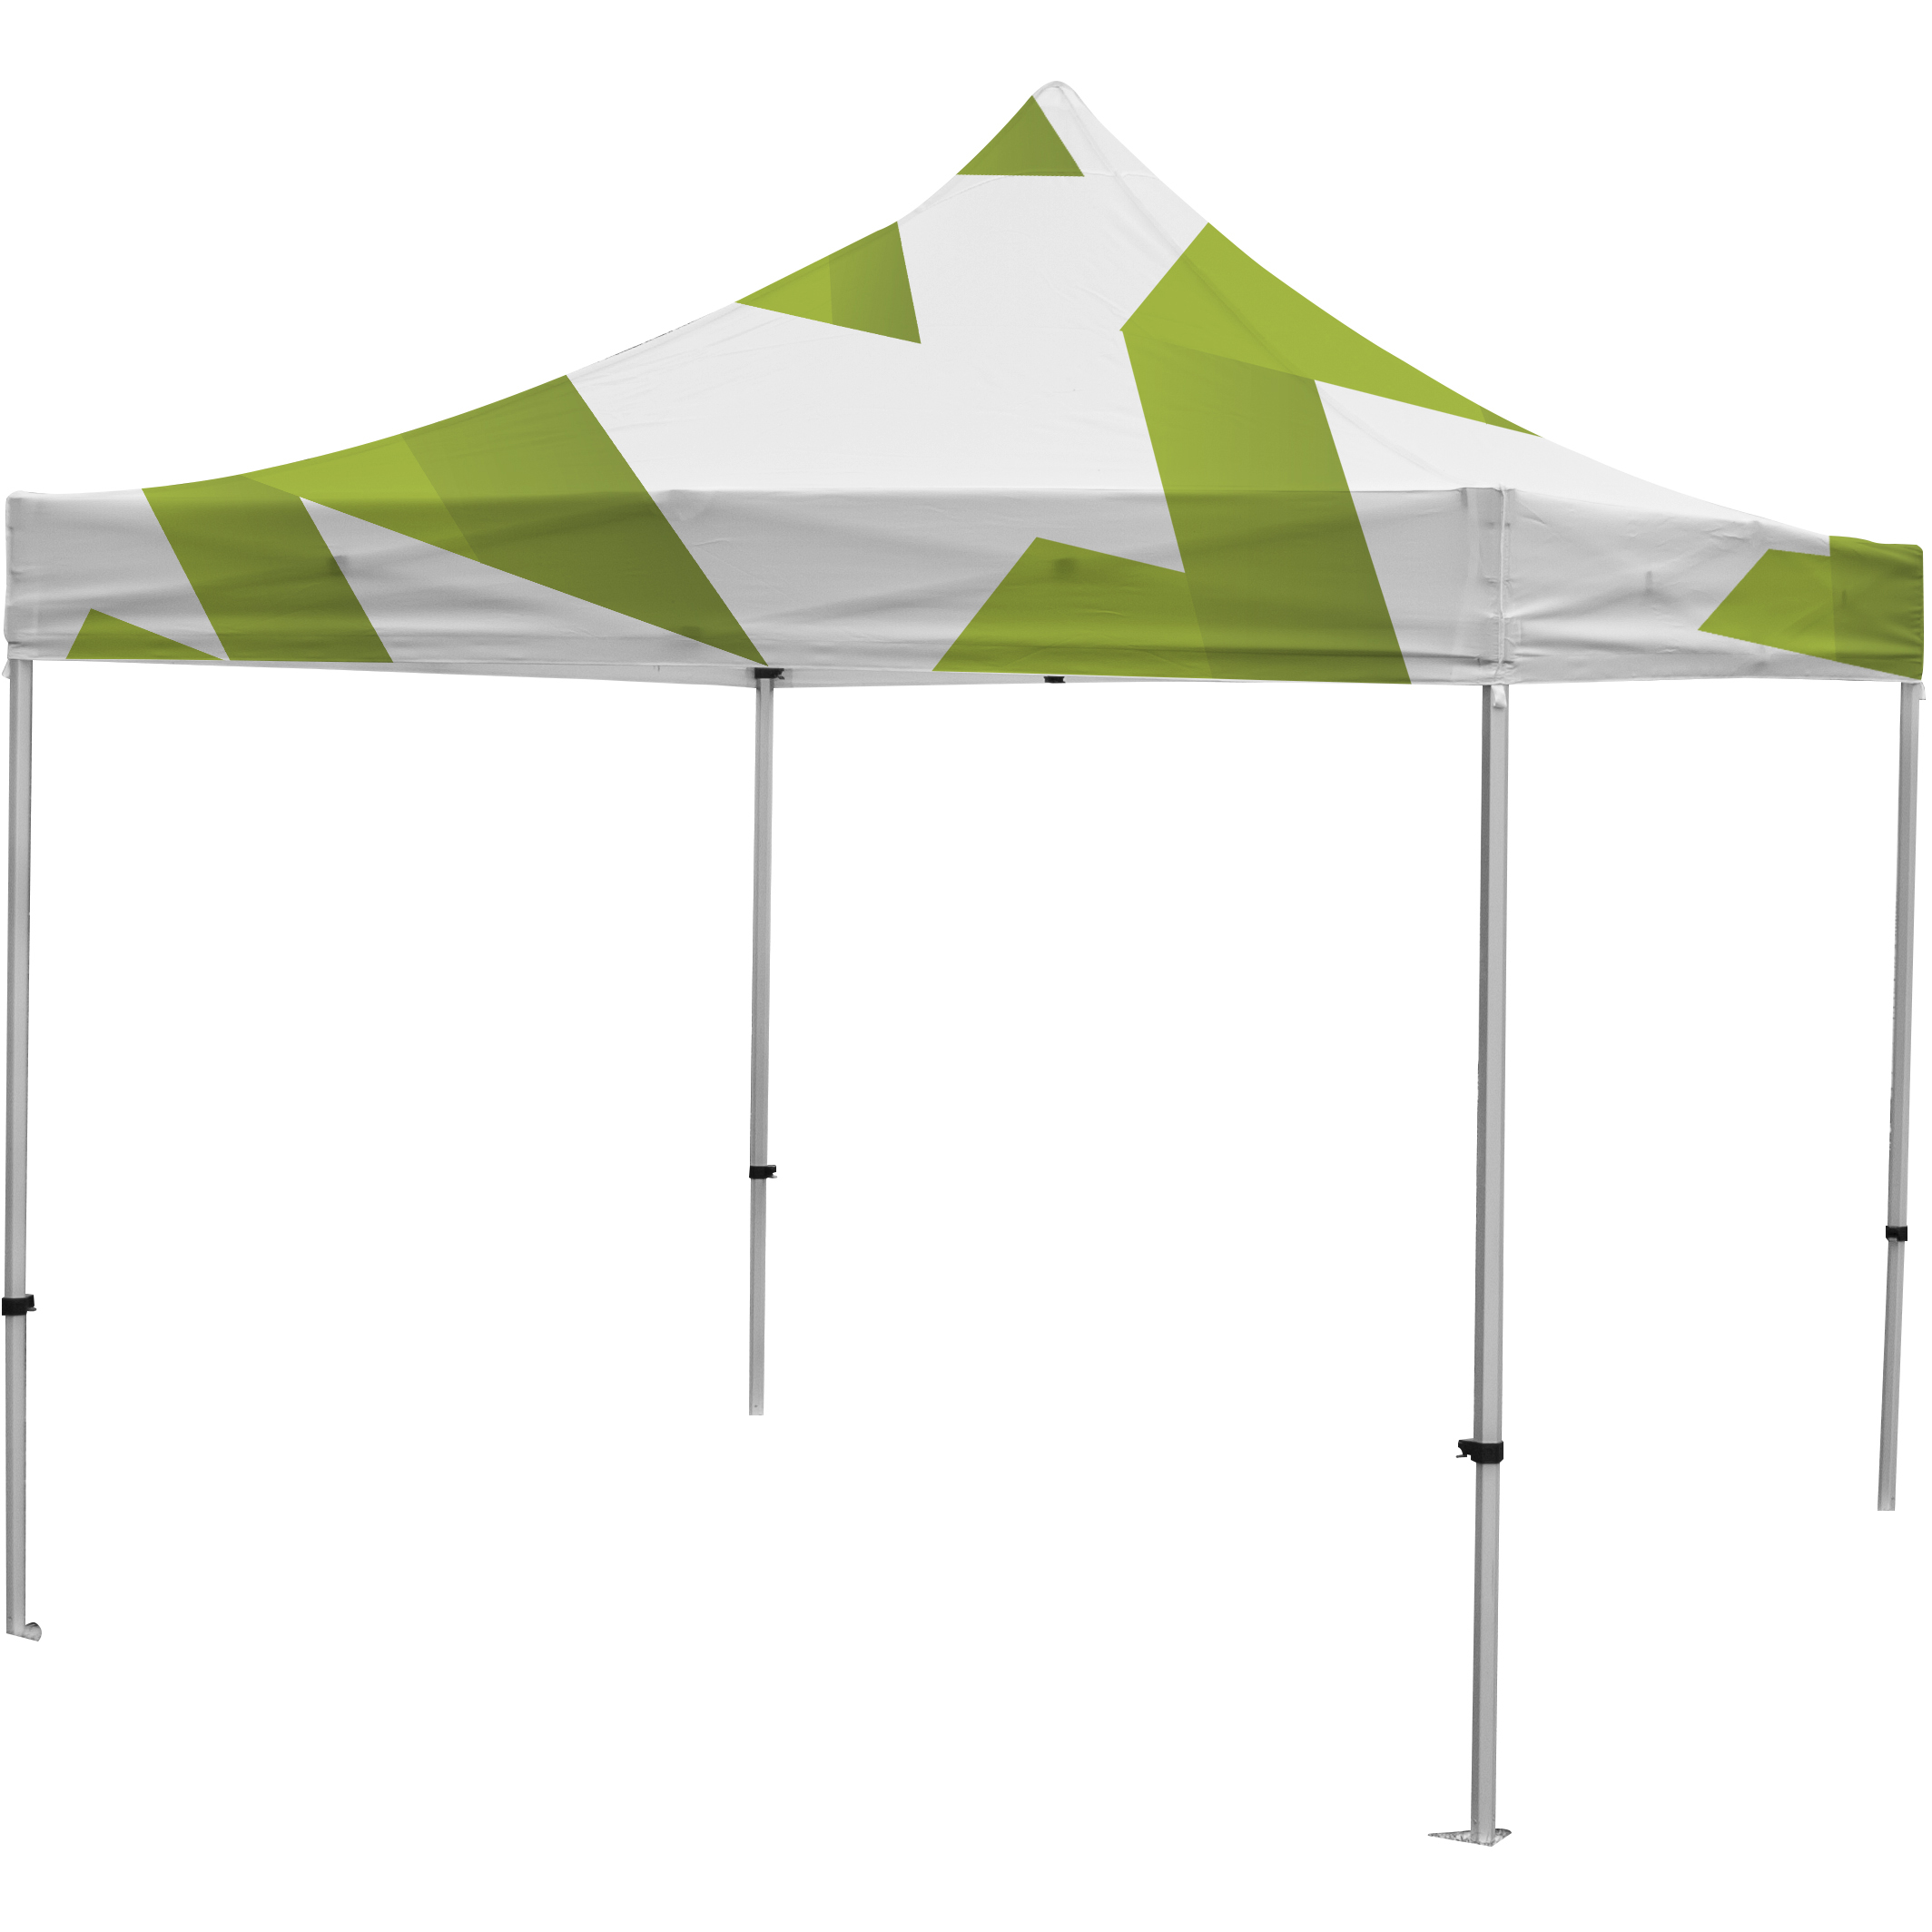 Portable Exhibition Tents : Outdoor pop up tent very displays